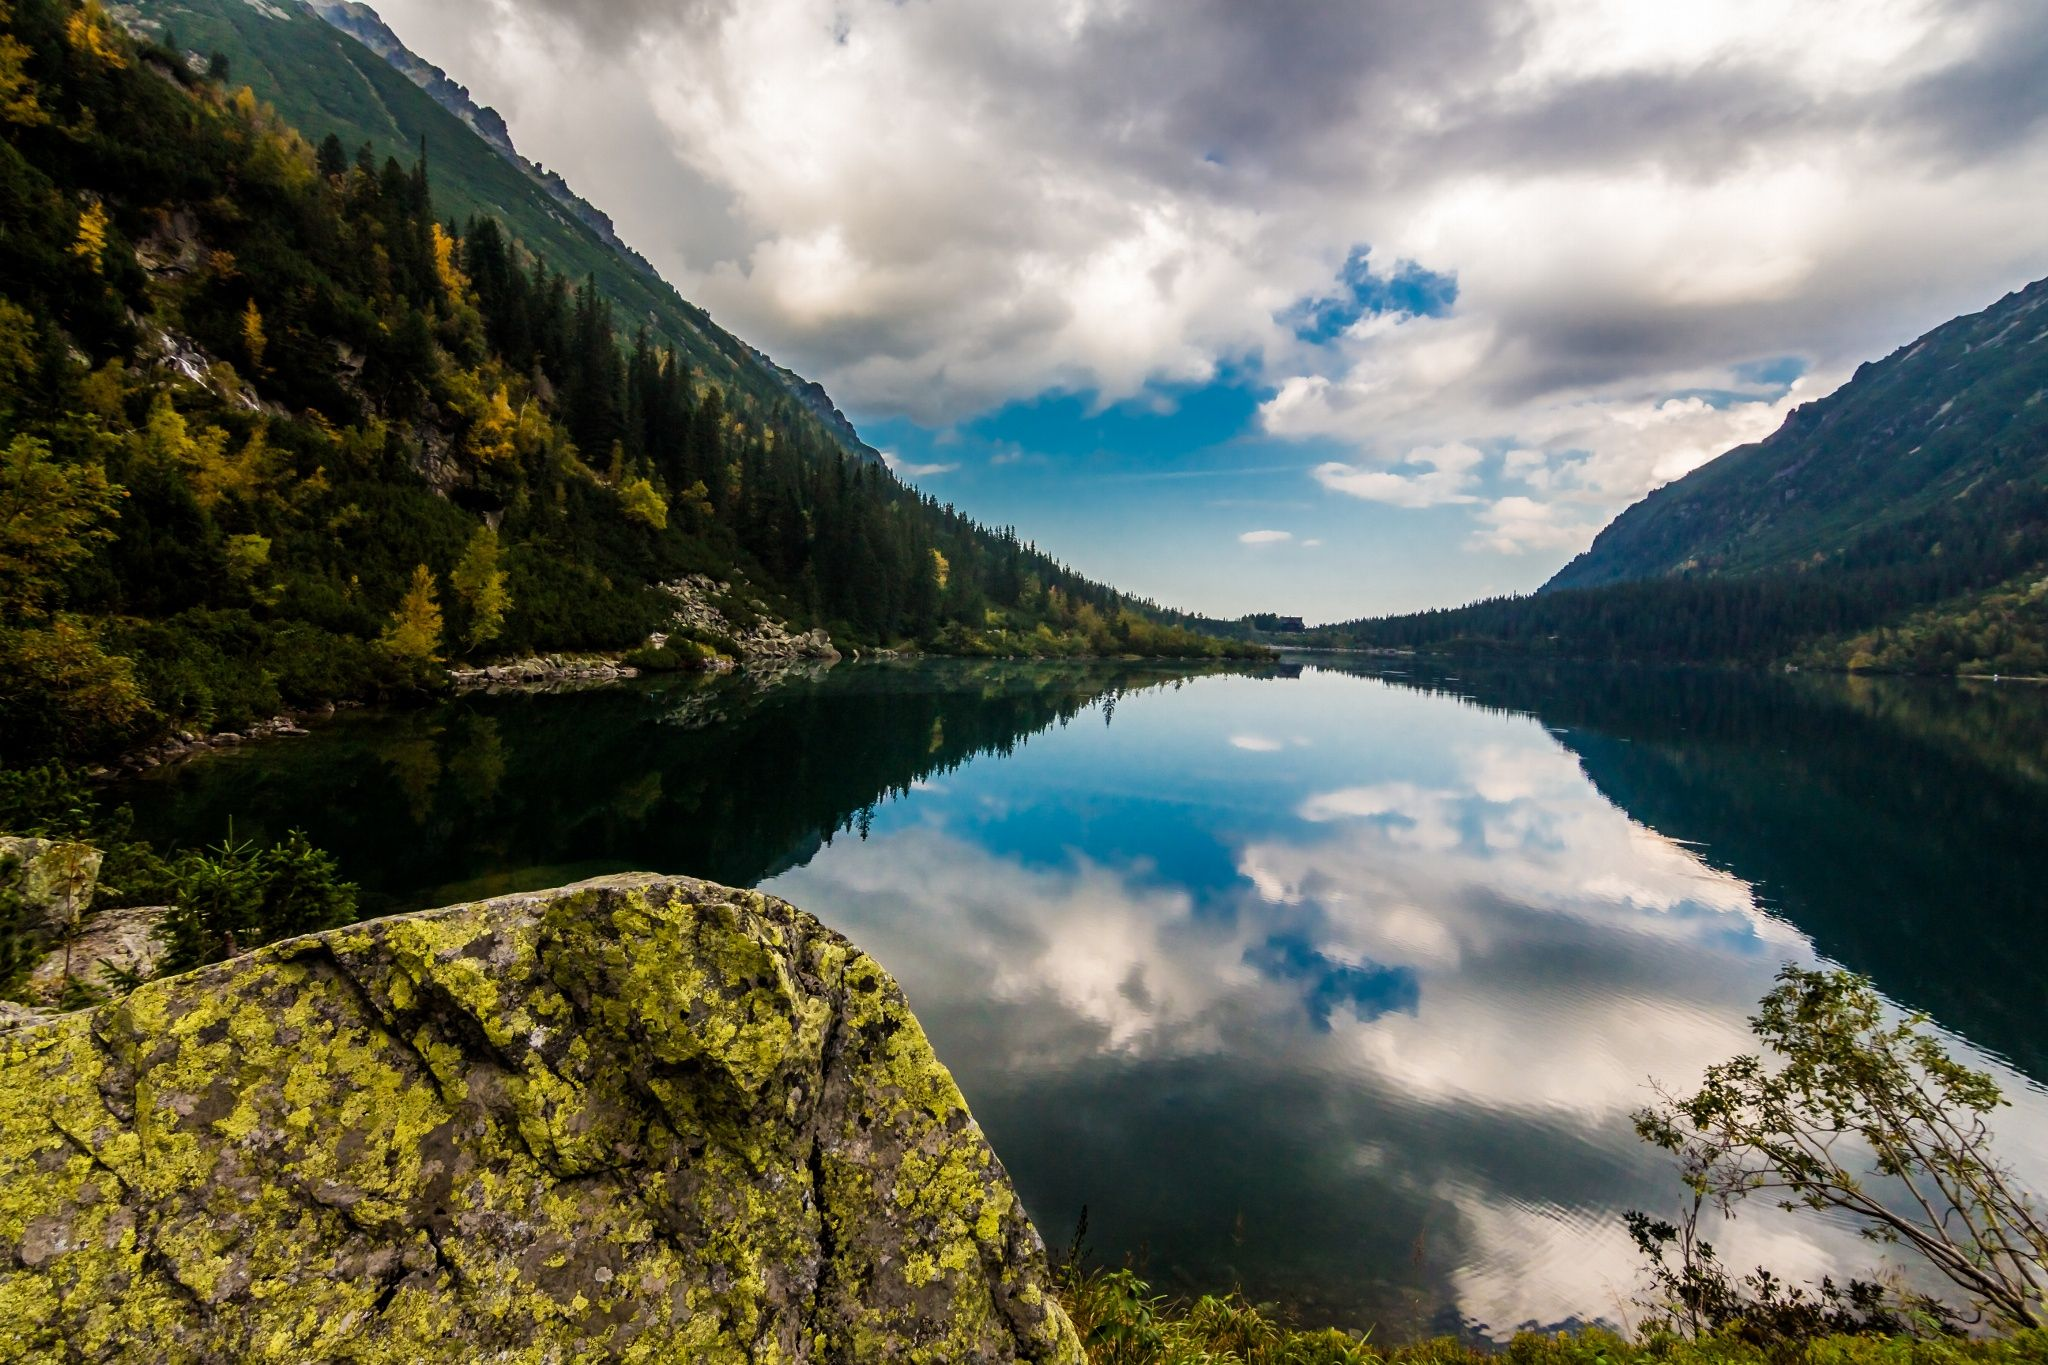 Reflection in Morskie oko lake by Laco Hubaty on 500px